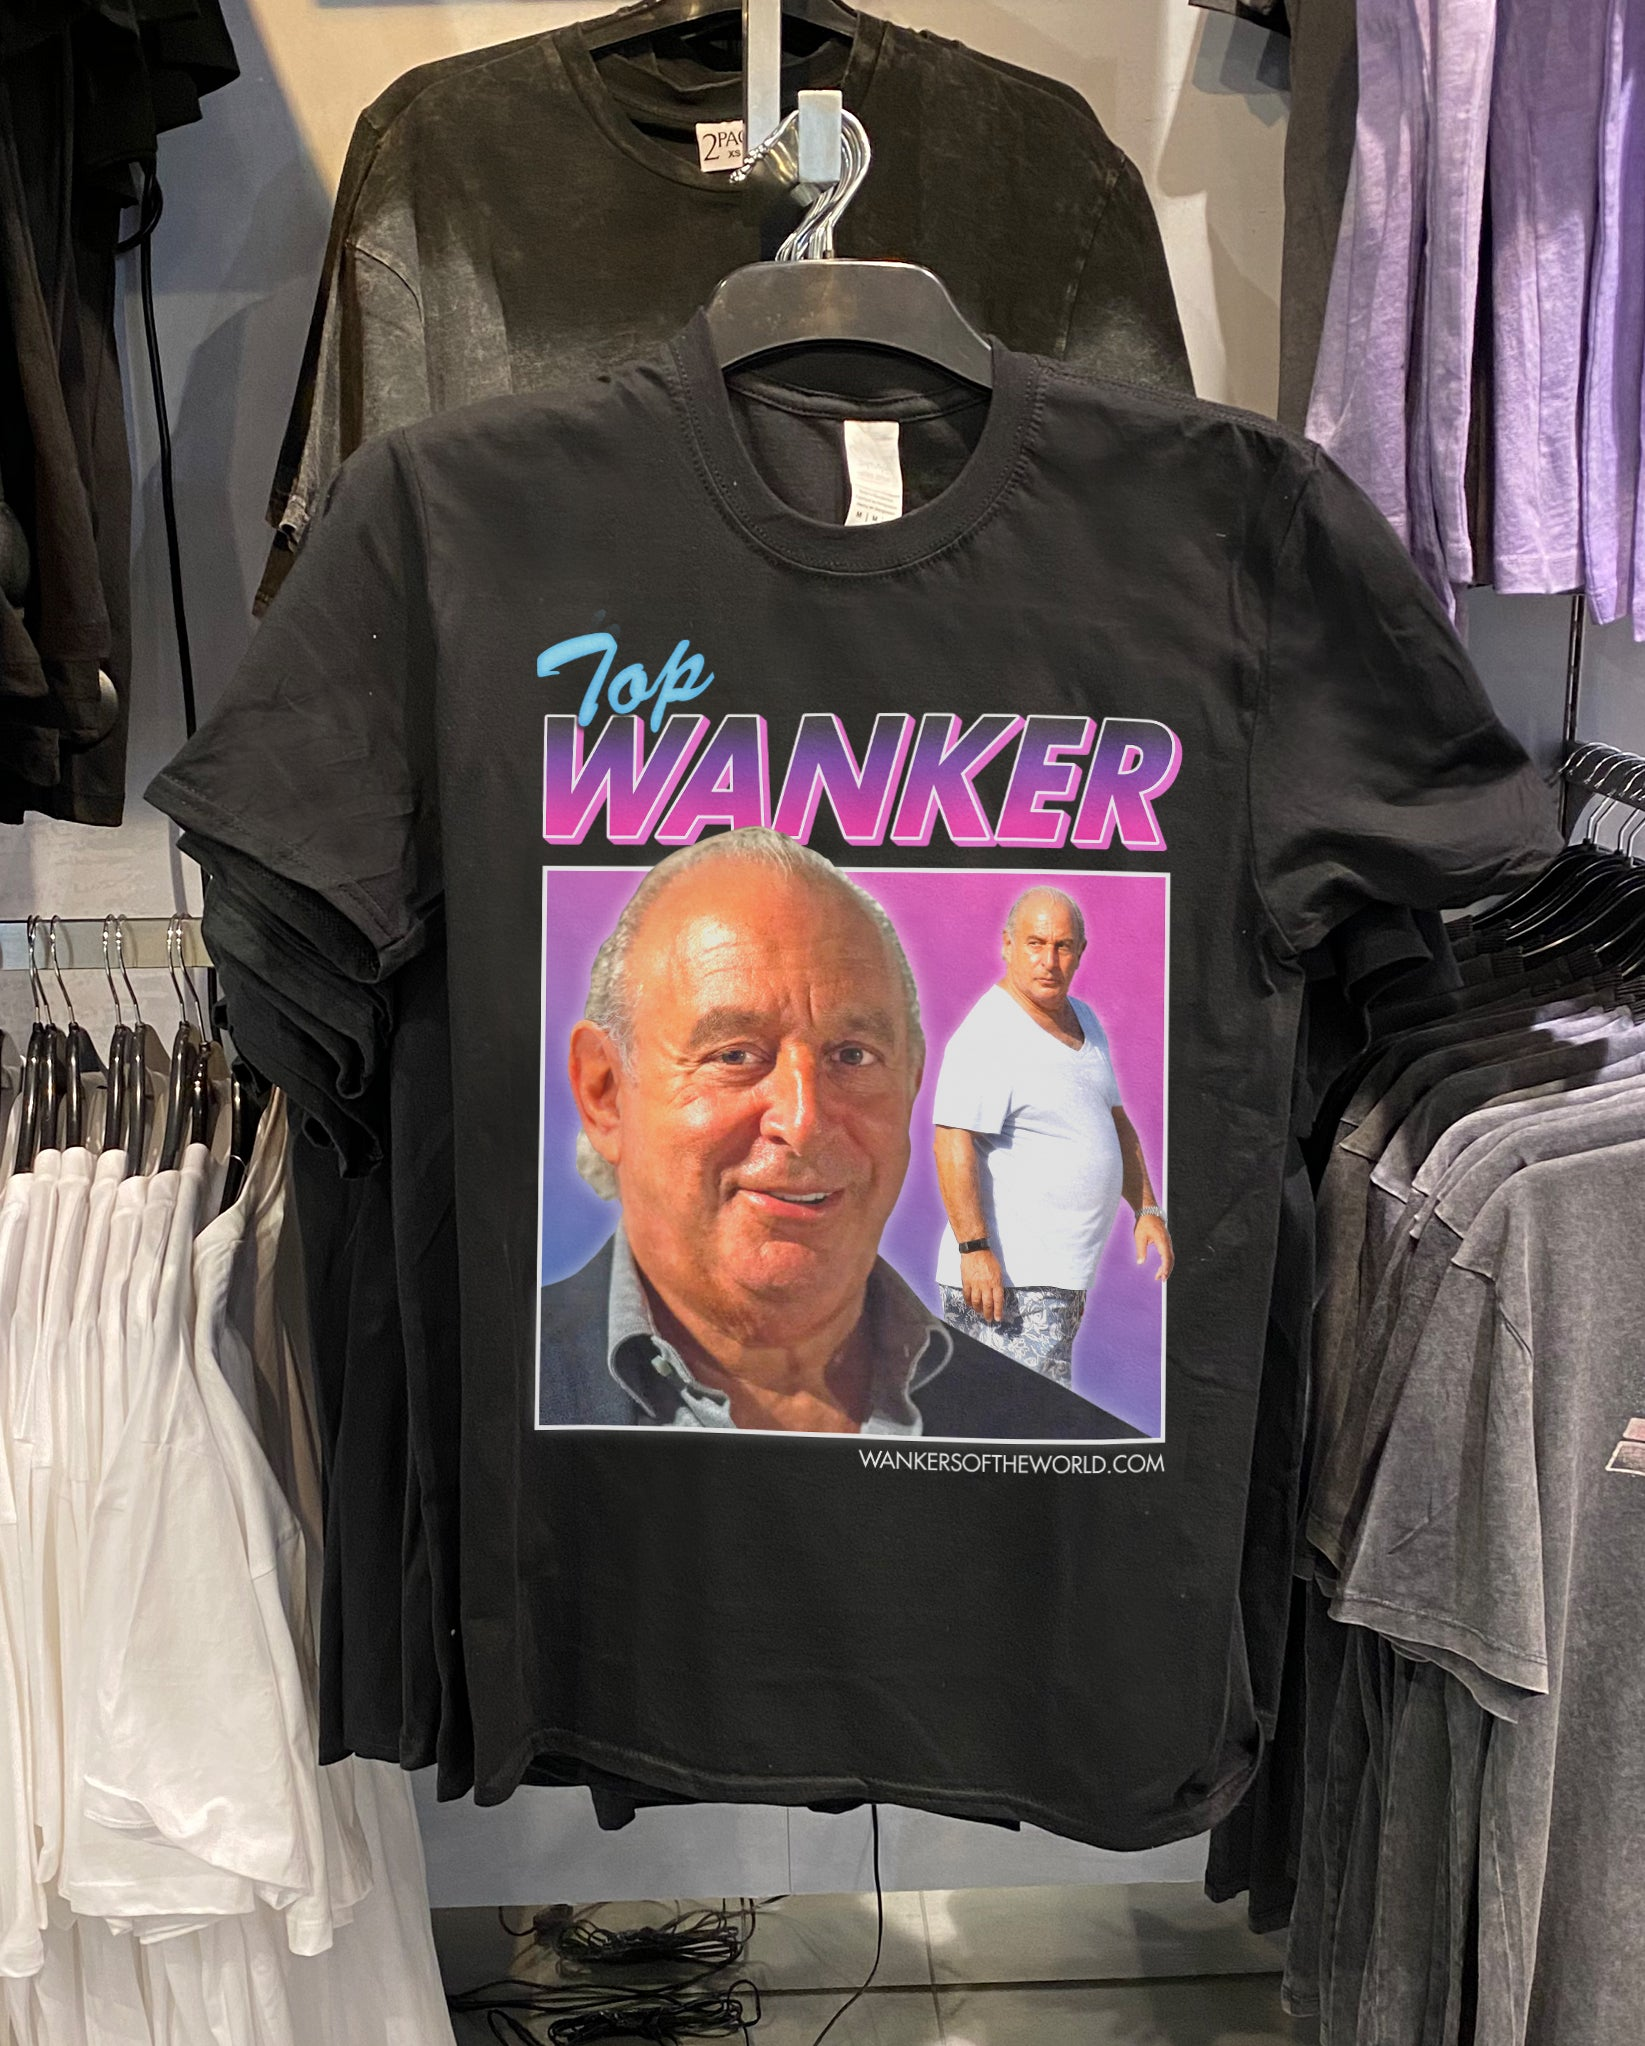 Philip Green, Top Wanker Tee